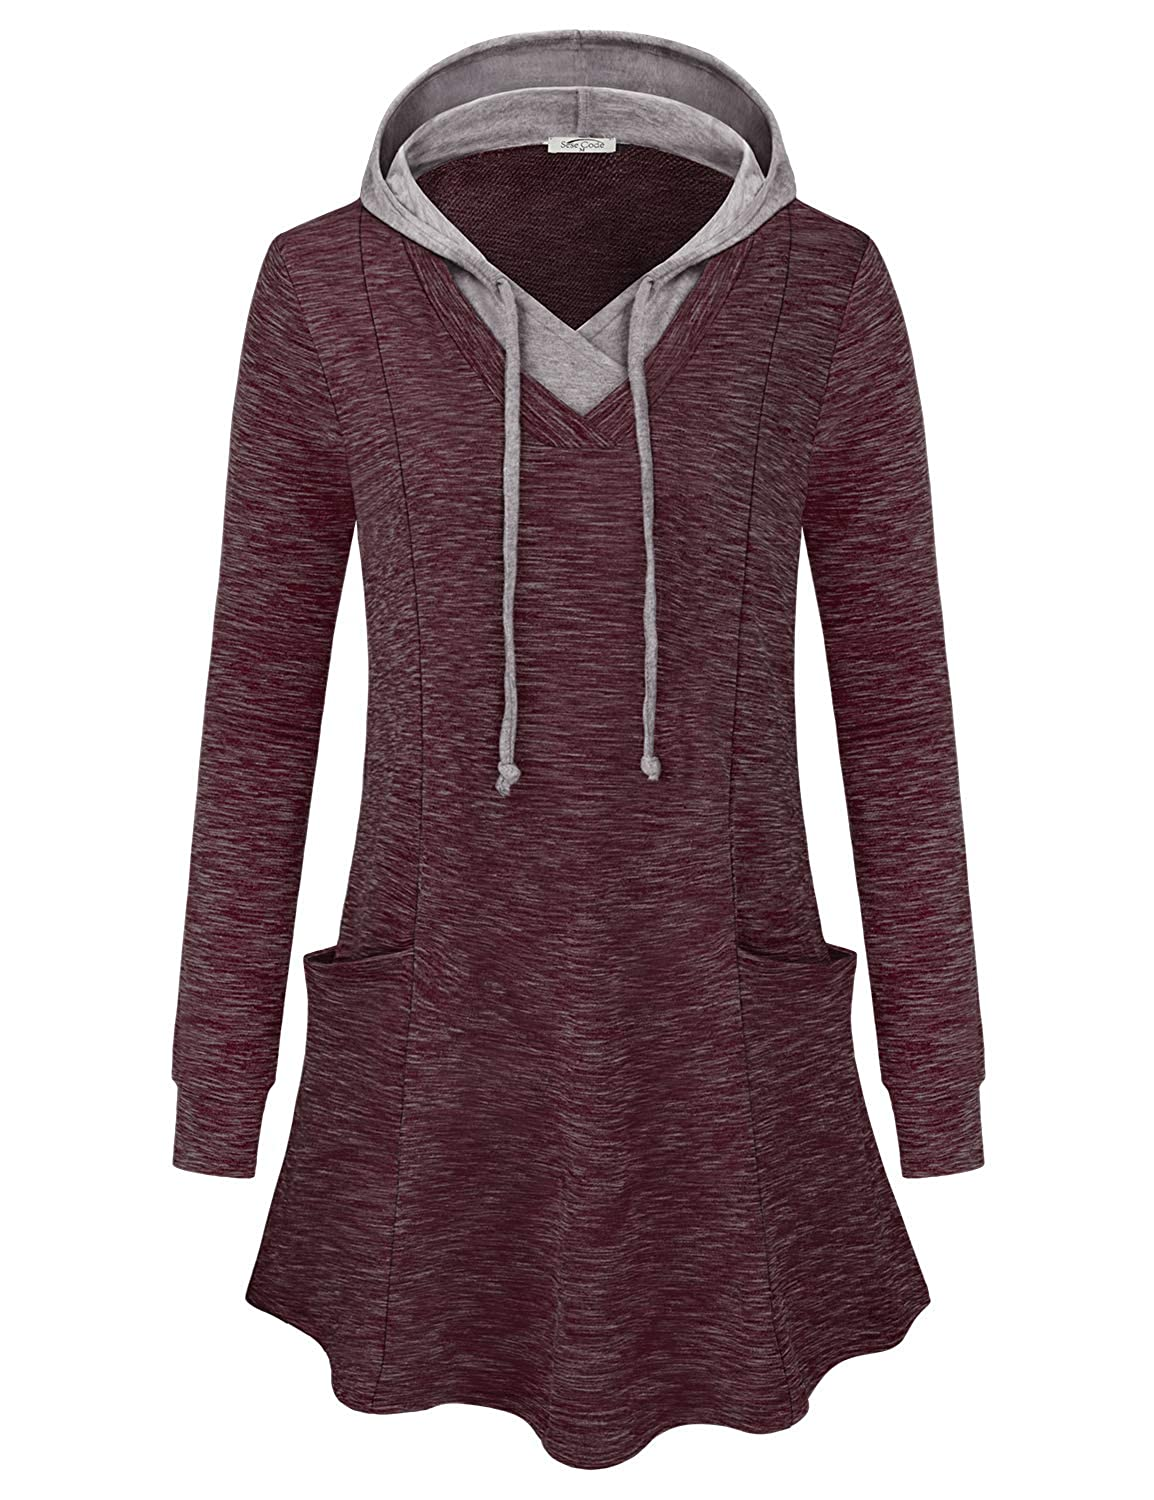 SeSe Code Women Long Sleeve V Neck Pullover Hooded Sweatshirt with Pockets